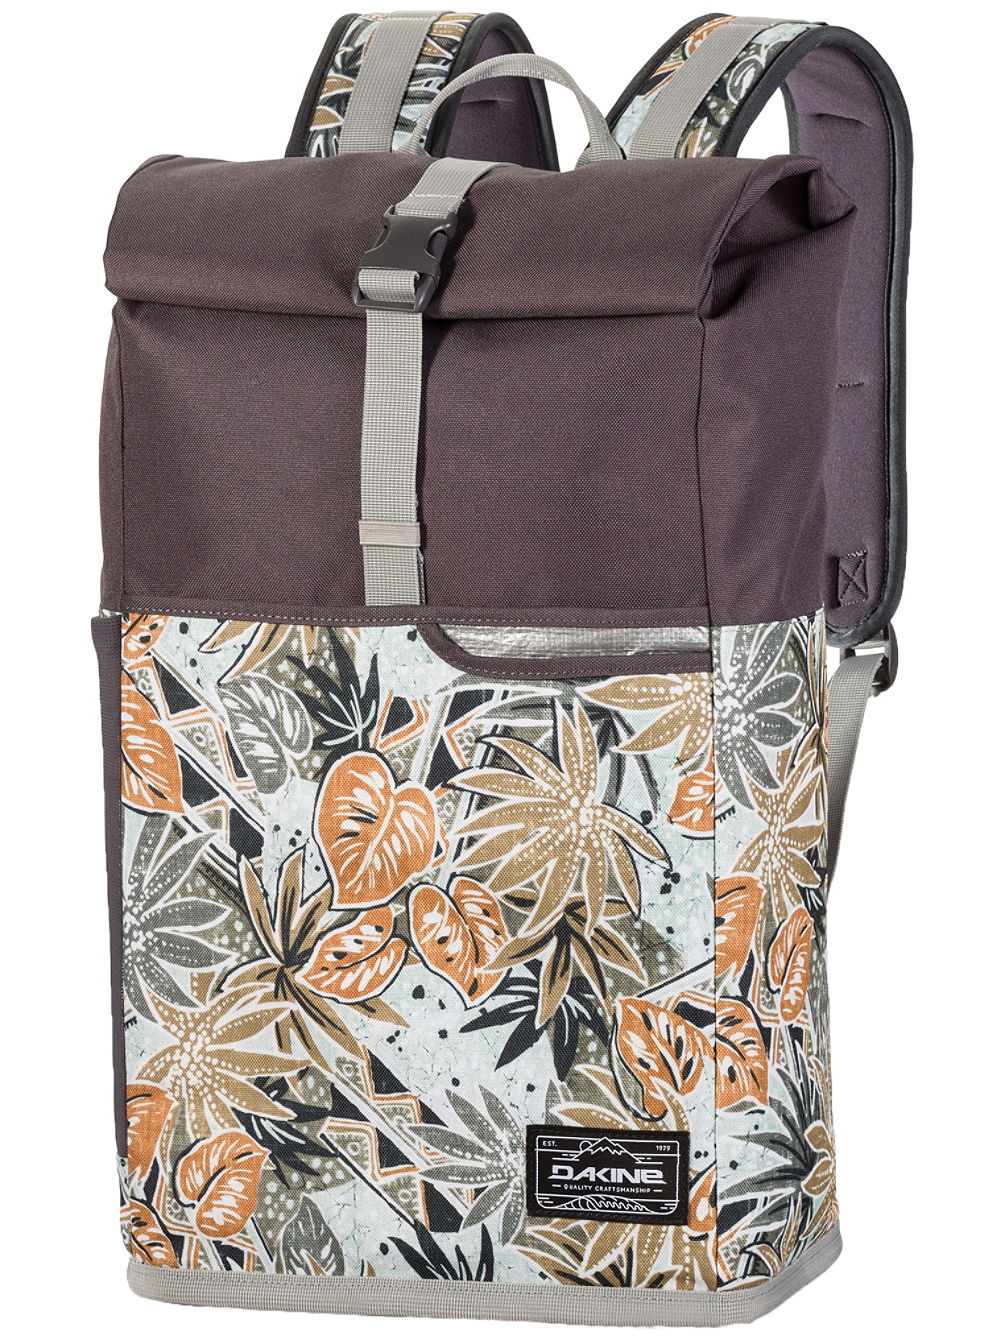 Buy Dakine Section Roll Top Wet/Dry 28L Bag online at blue-tomato.com